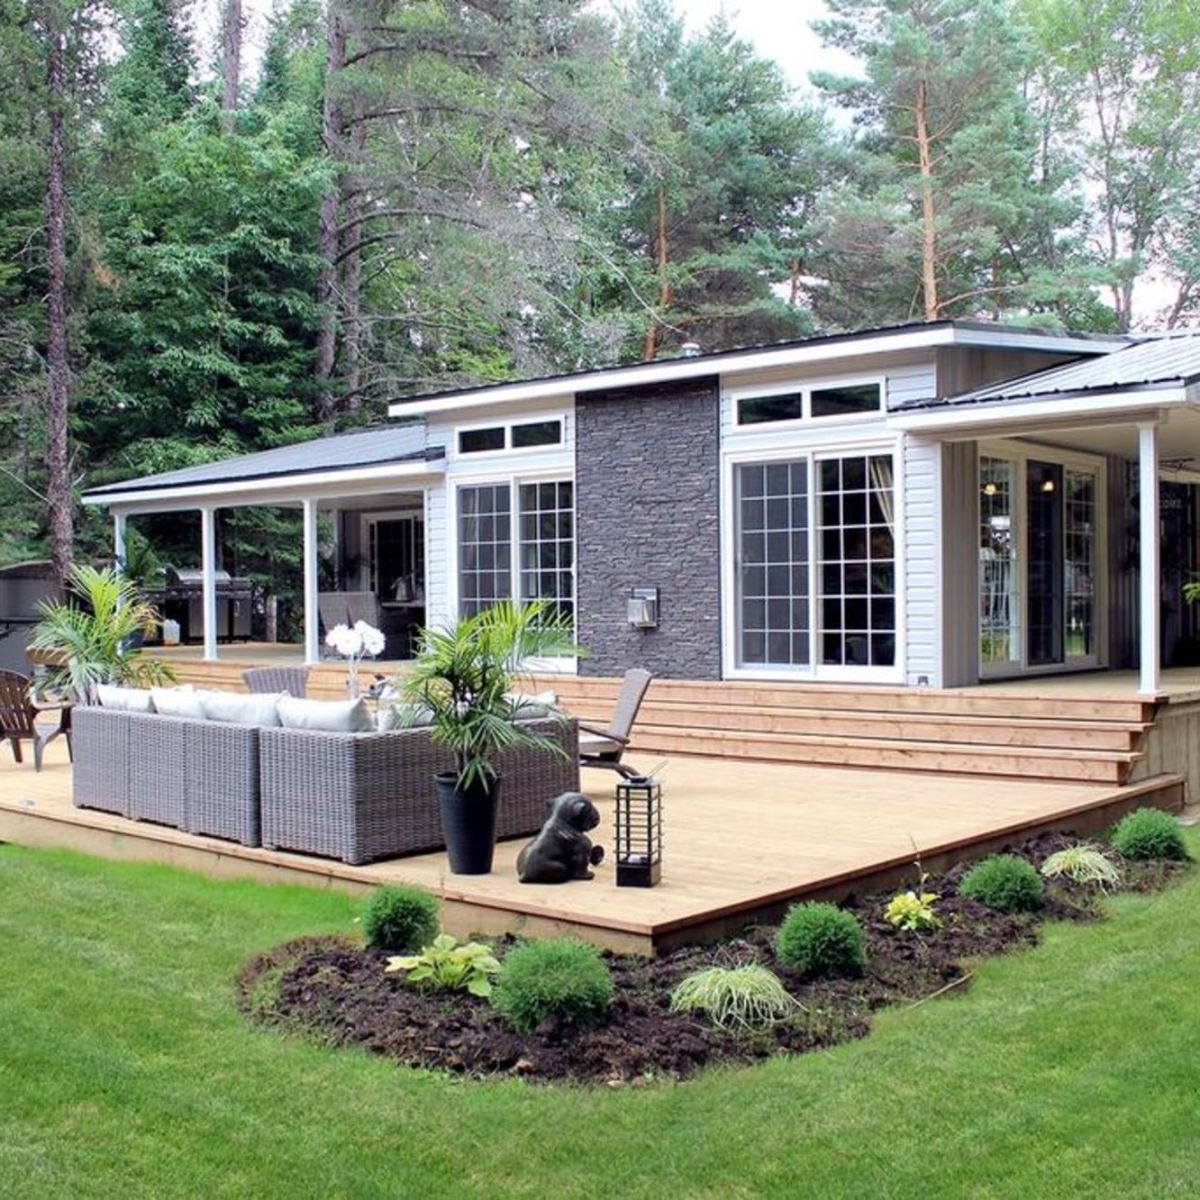 Tiny Home Designs: Tiny House For Sale In Port